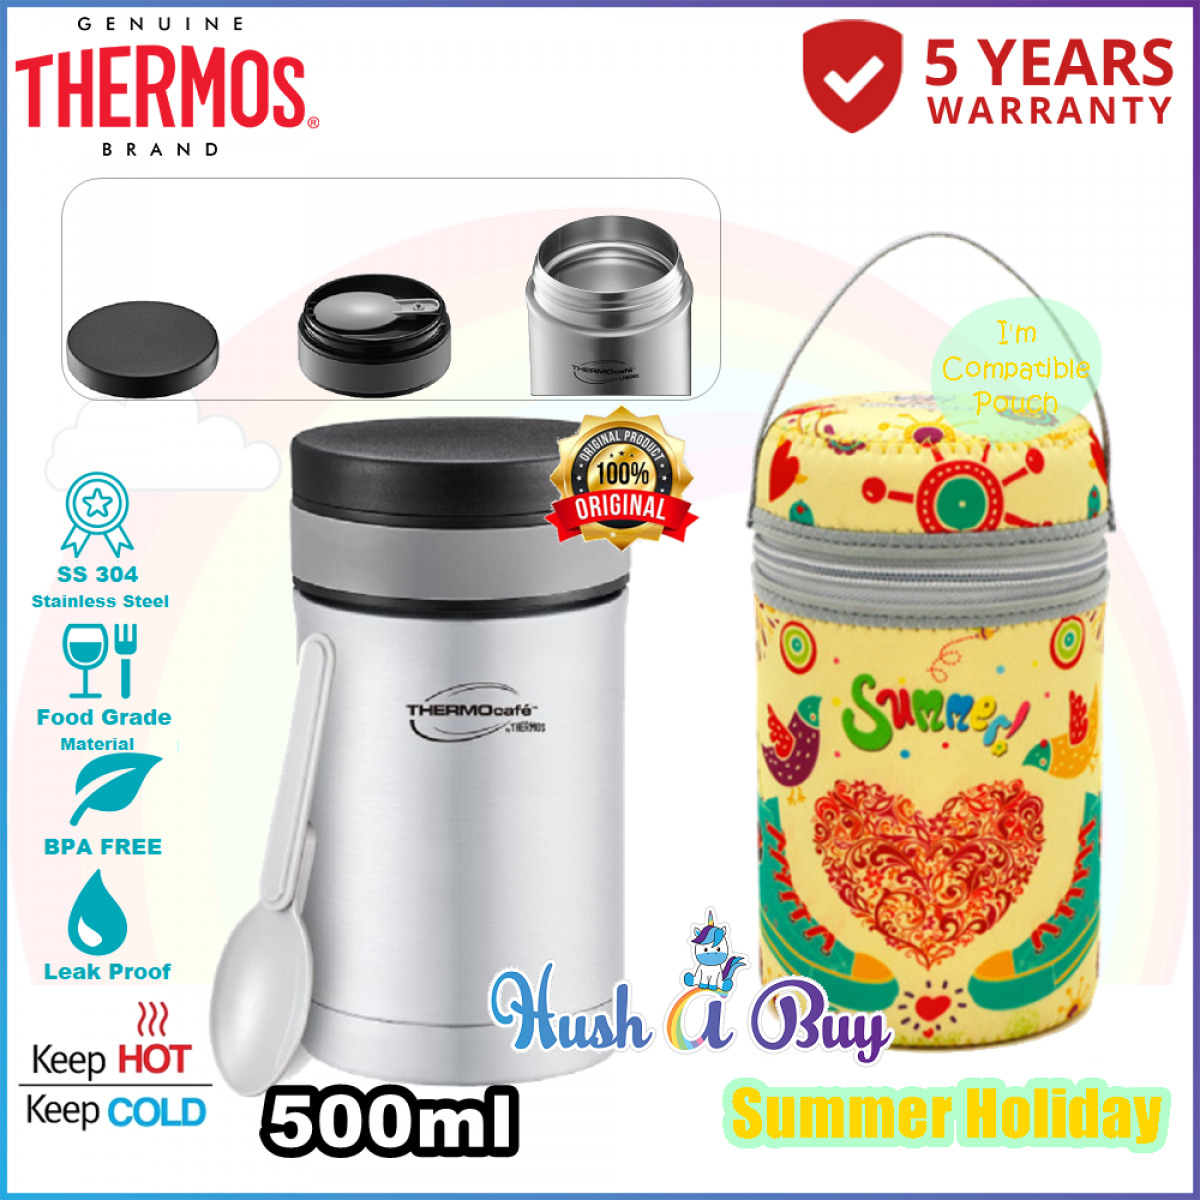 Thermos Thermocafe Basic Living Food Jar With PP Spoon 500ml with COMPATIBLE POUCH